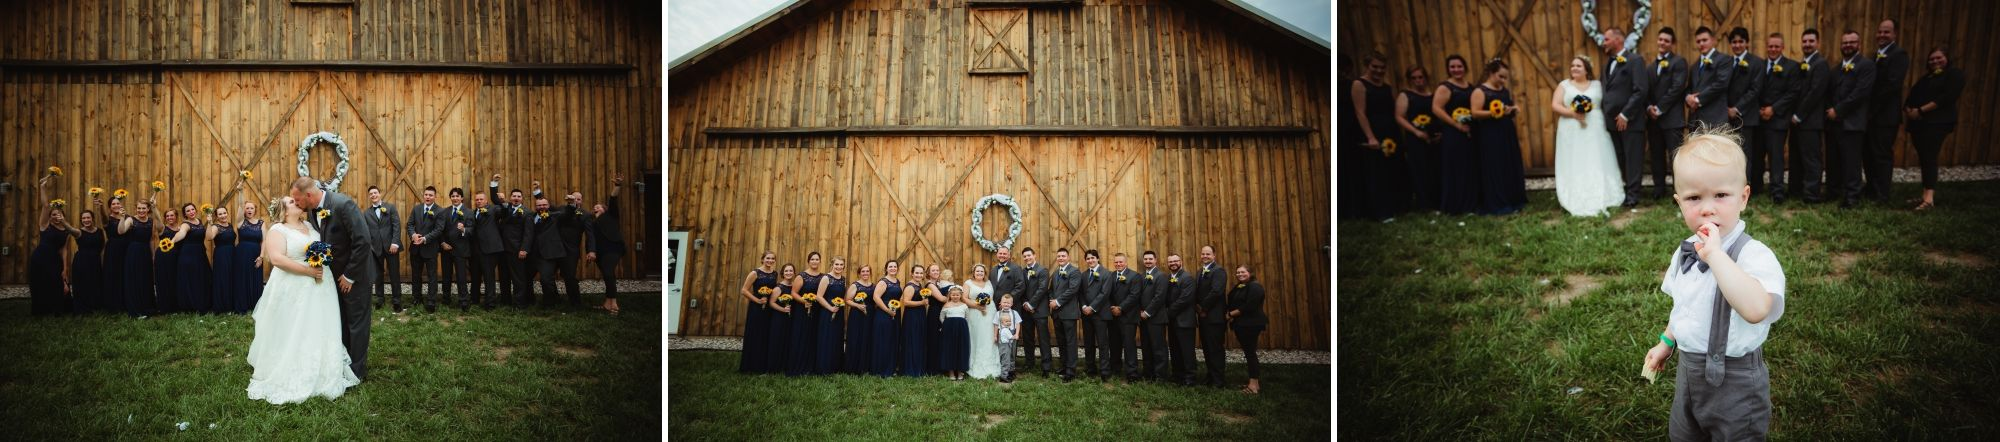 Collage of the entire wedding party in front of the barn.